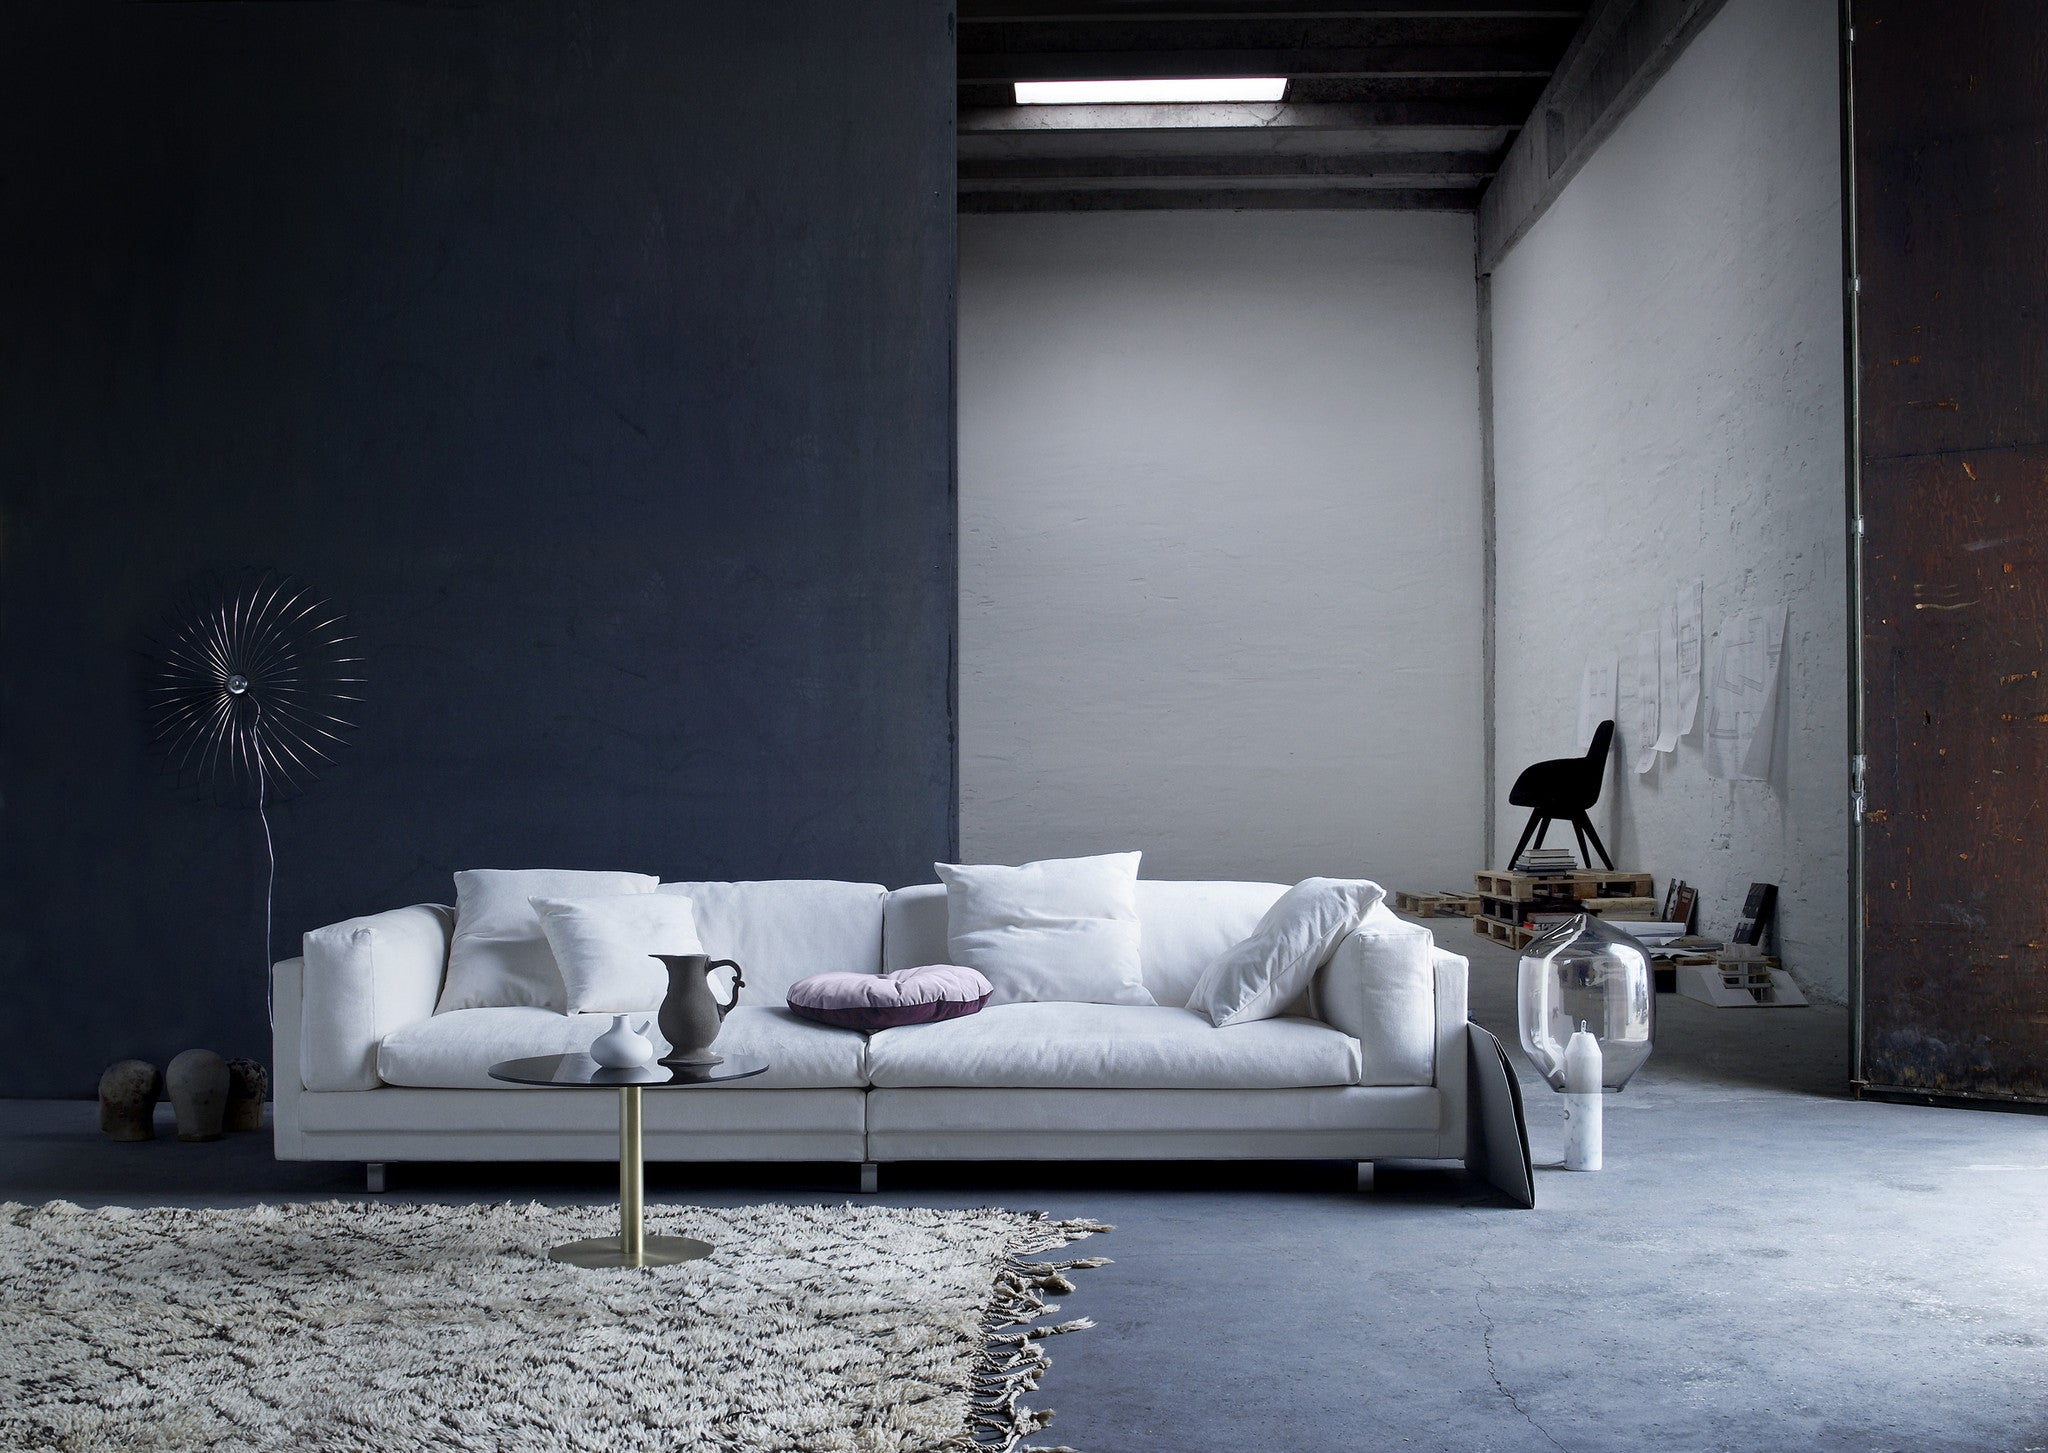 Tub Sofa by Eilersen at Trade Source Furniture